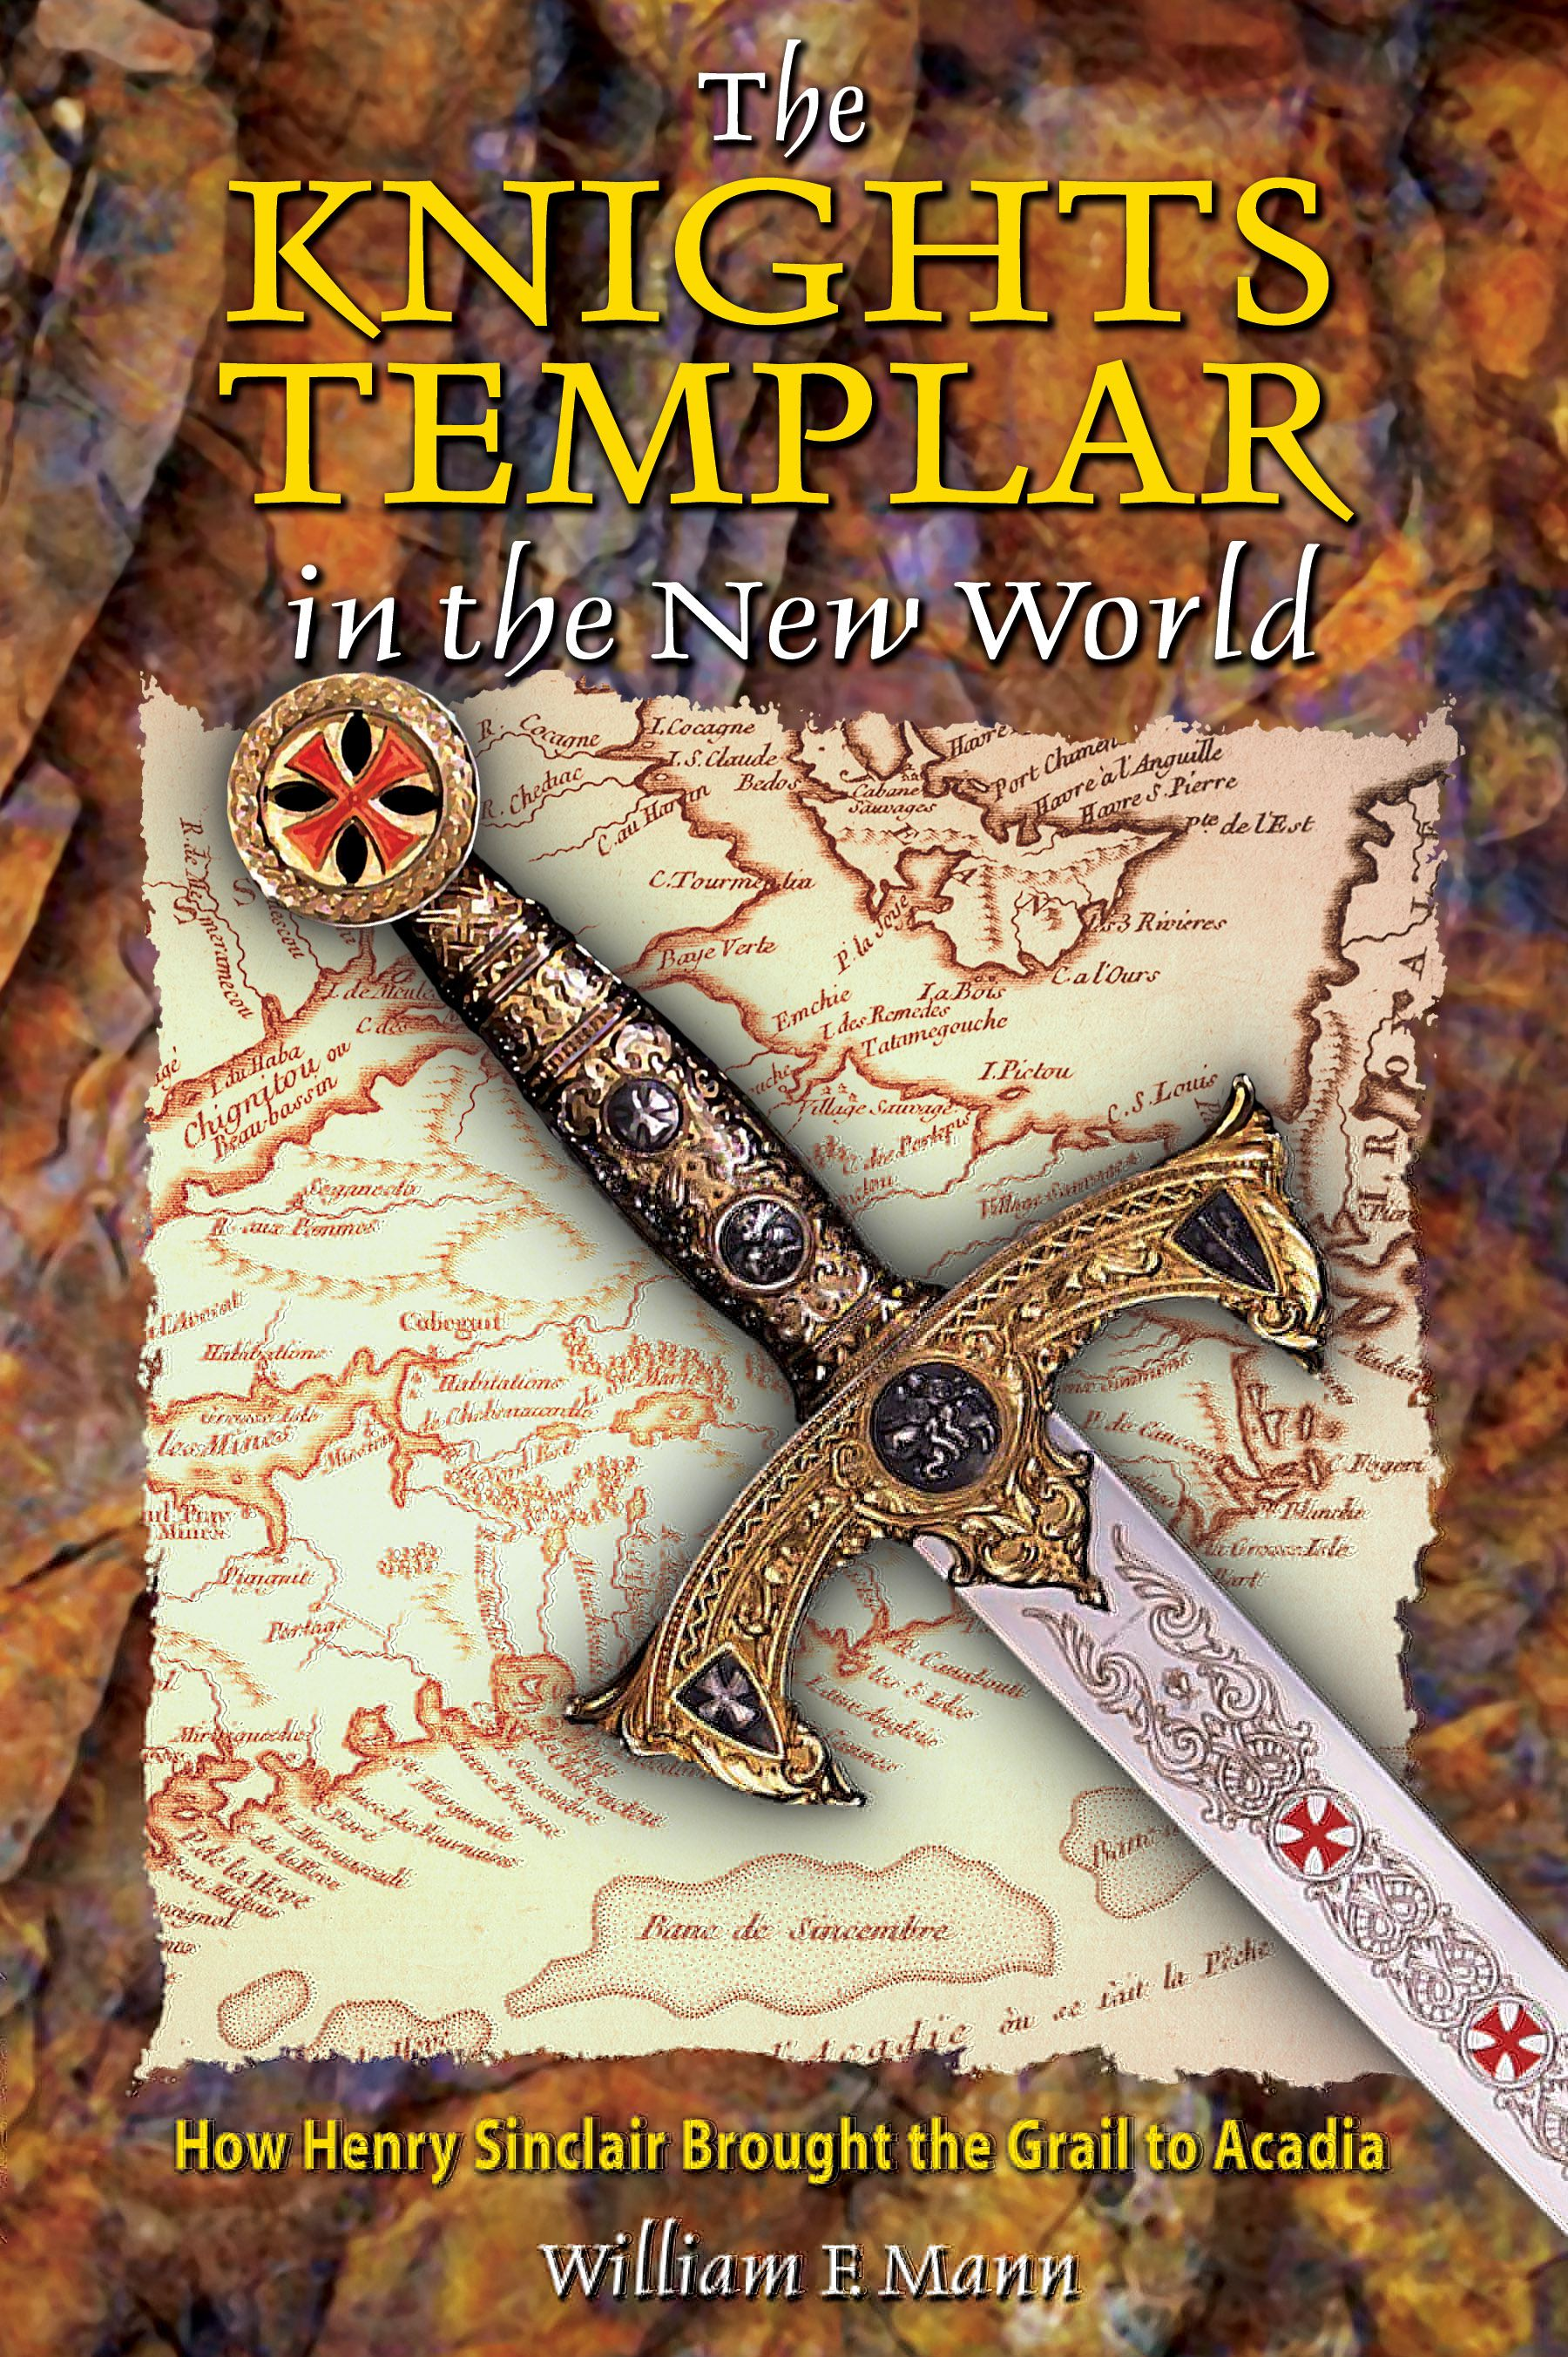 The knights templar in the new world 9780892811854 hr